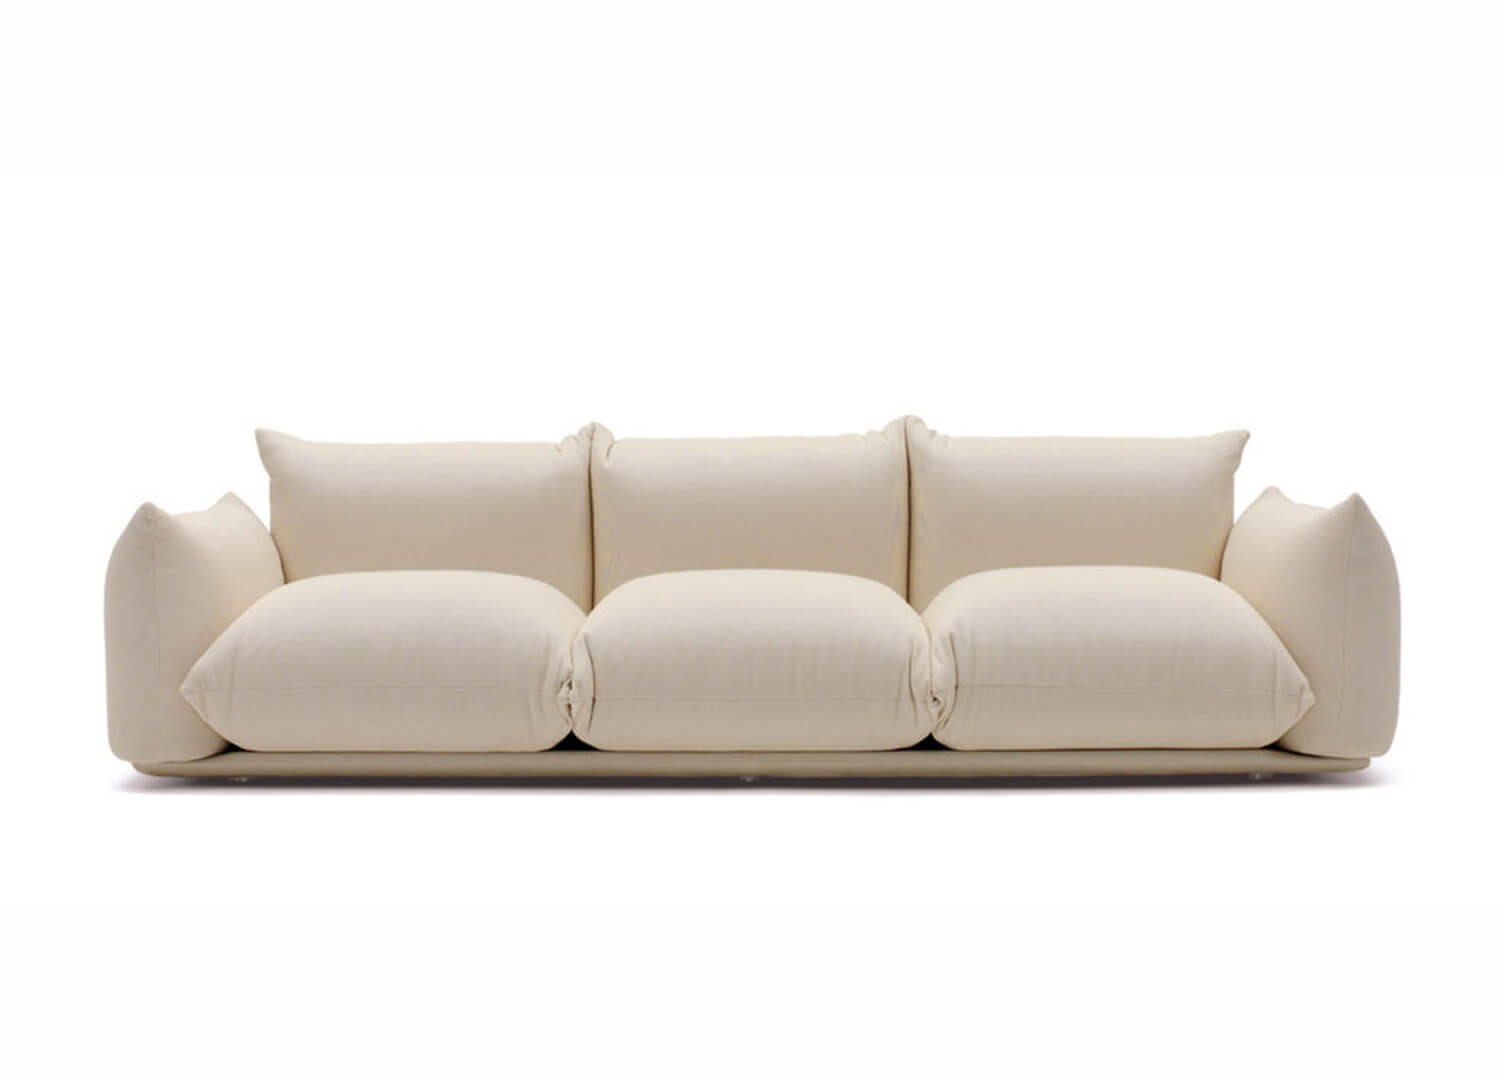 est living design directory marenco sofa arflex poliform white